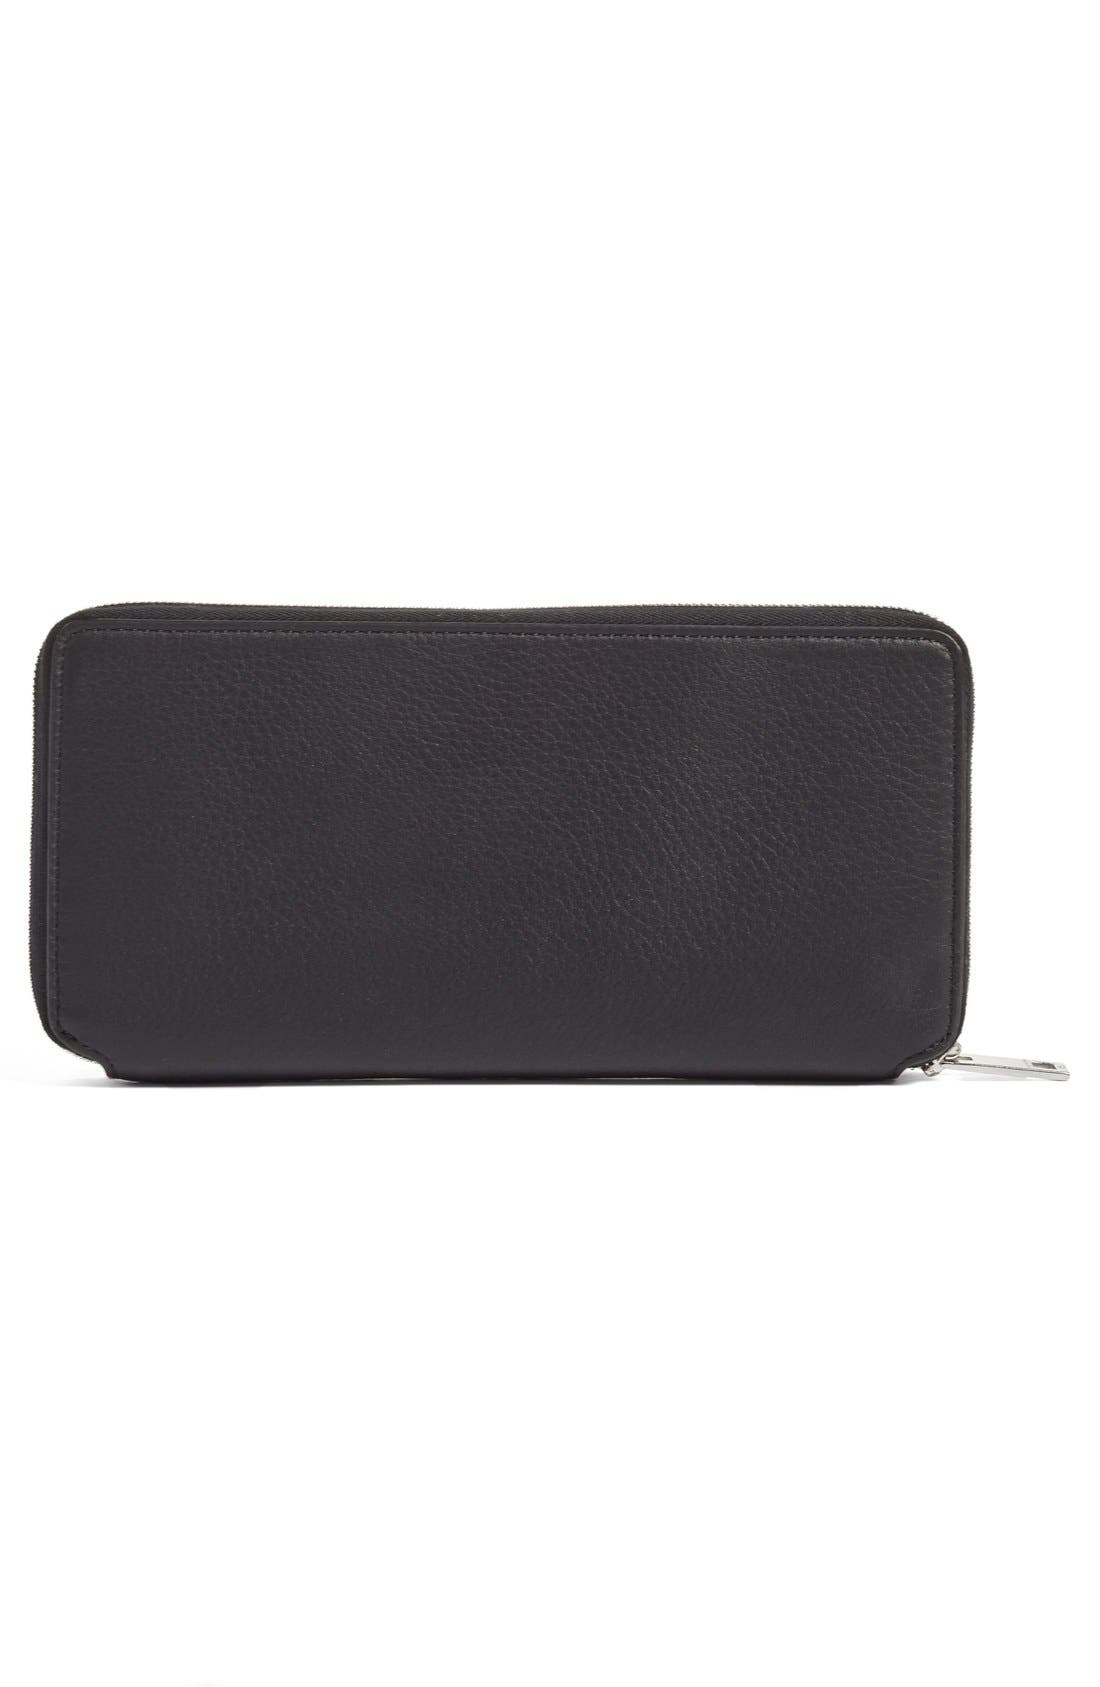 Leather Zip Around Wallet,                             Alternate thumbnail 4, color,                             BLACK